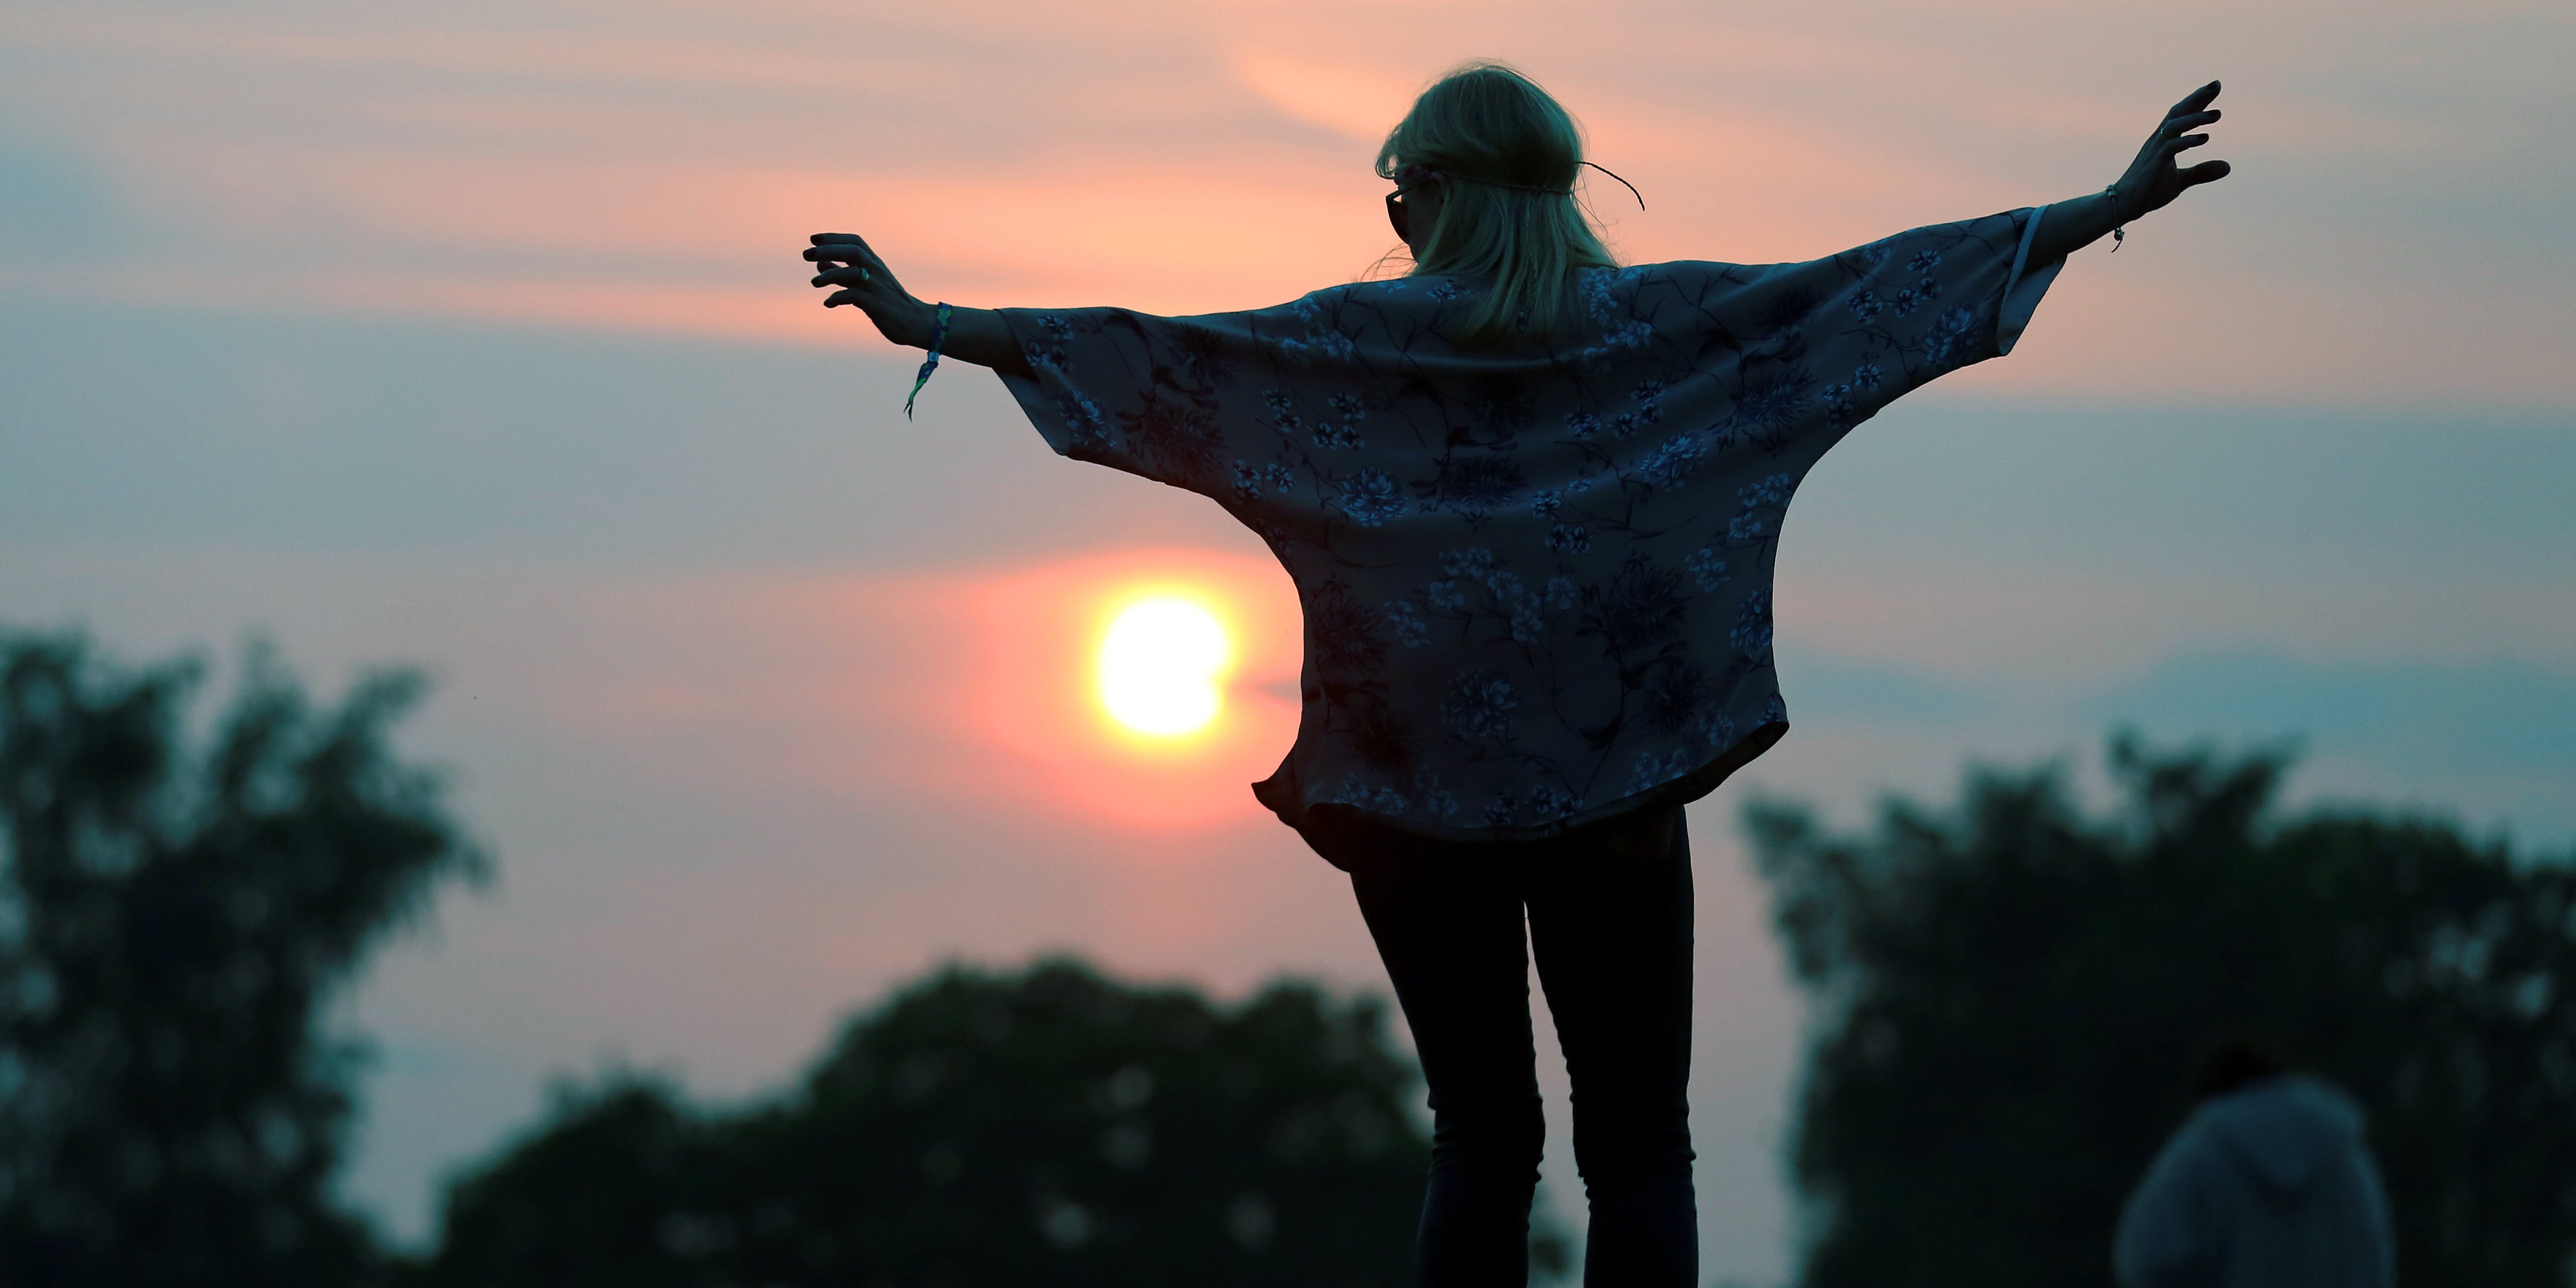 GLASTONBURY, ENGLAND - JUNE 26: A woman stands on a rock at the stone circle as people gather for sunset at the Glastonbury Festival of Contemporary Performing Arts site at Worthy Farm, Pilton on June 26, 2013 near Glastonbury, England. Northern Nights in the Emerald Triangle just announced major discounts for attendees who buy the local weed